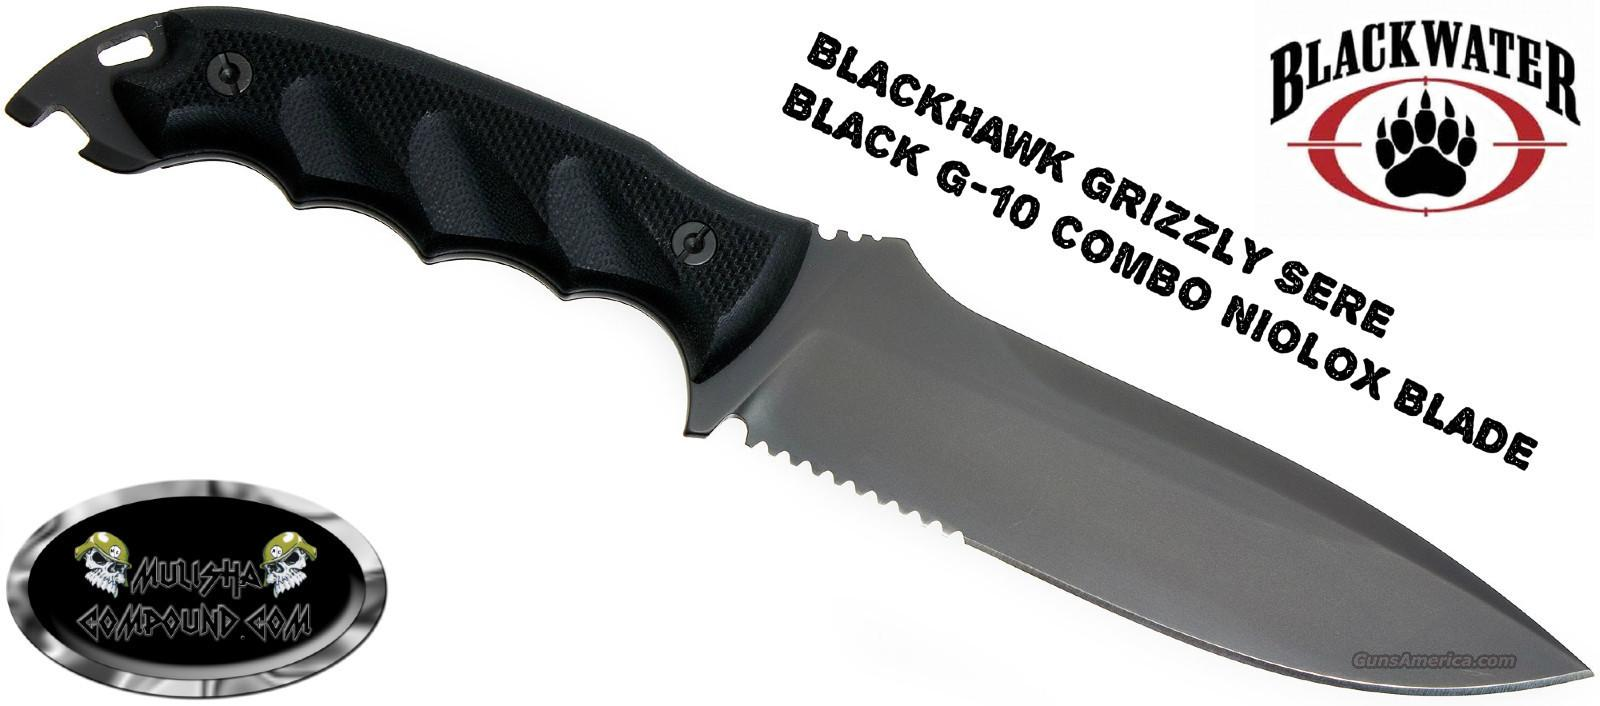 Blackwater BWGRX001 Grizzly SERE fixed knife Black G-10 Combo Niolox Blade  Non-Guns > Knives/Swords > Military > Non-Bayonets